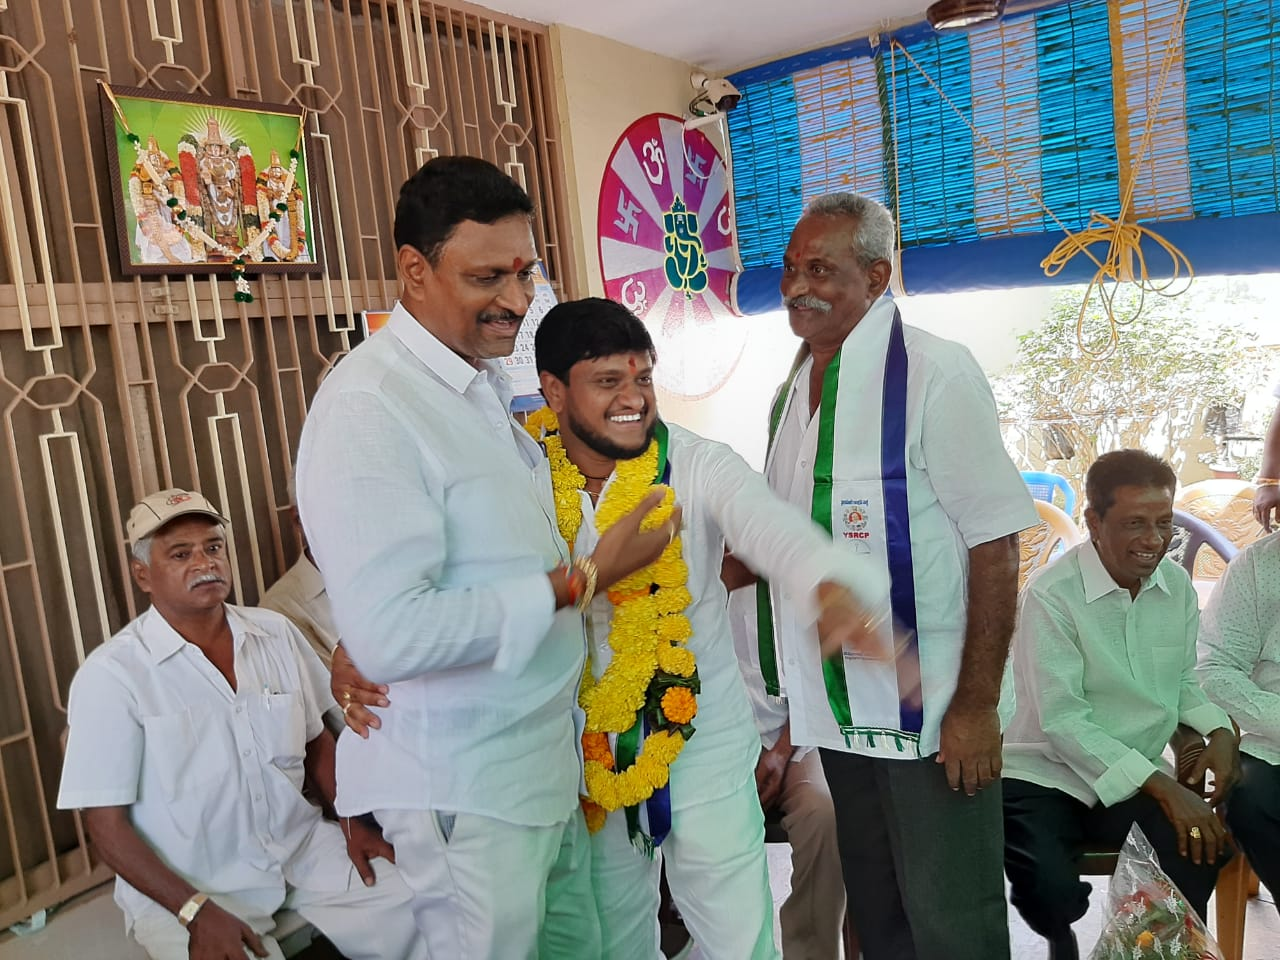 Vidadhasari Nagendra (YSRCP Raja)   President of Town Youth YSRCP   Peddapuram   President of Sri Krishna Yadava Sankshem Sangam   Head of Sri Lalitha Chicken and Mutton Shop   Party Activist   Ward In-charge   Chairman of the Cemetery Development   Town Incharge of YSRCP   Peddapuram   East Godavari   Andhra Pradesh   theLeadersPage   Social Services